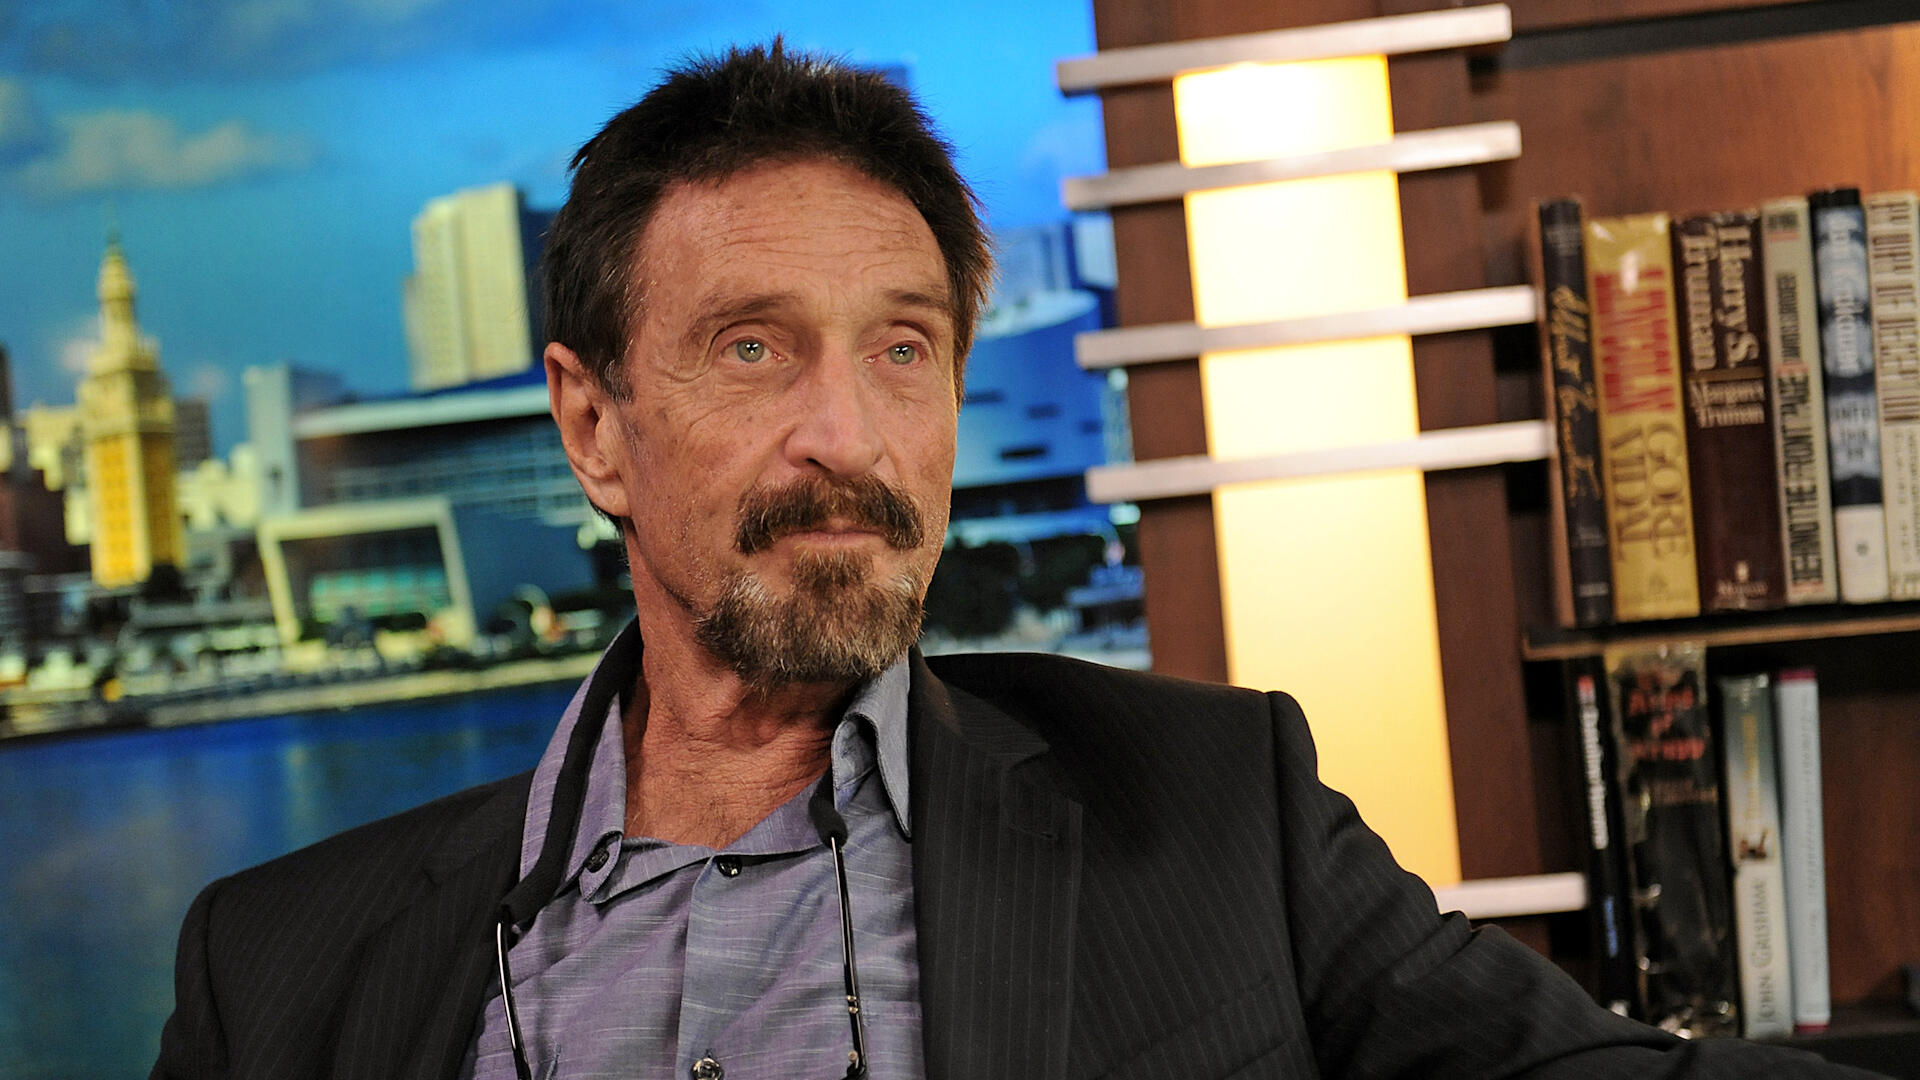 Video: Antivirus pioneer John McAfee found dead, Bitcoin loses most of 2021 gains